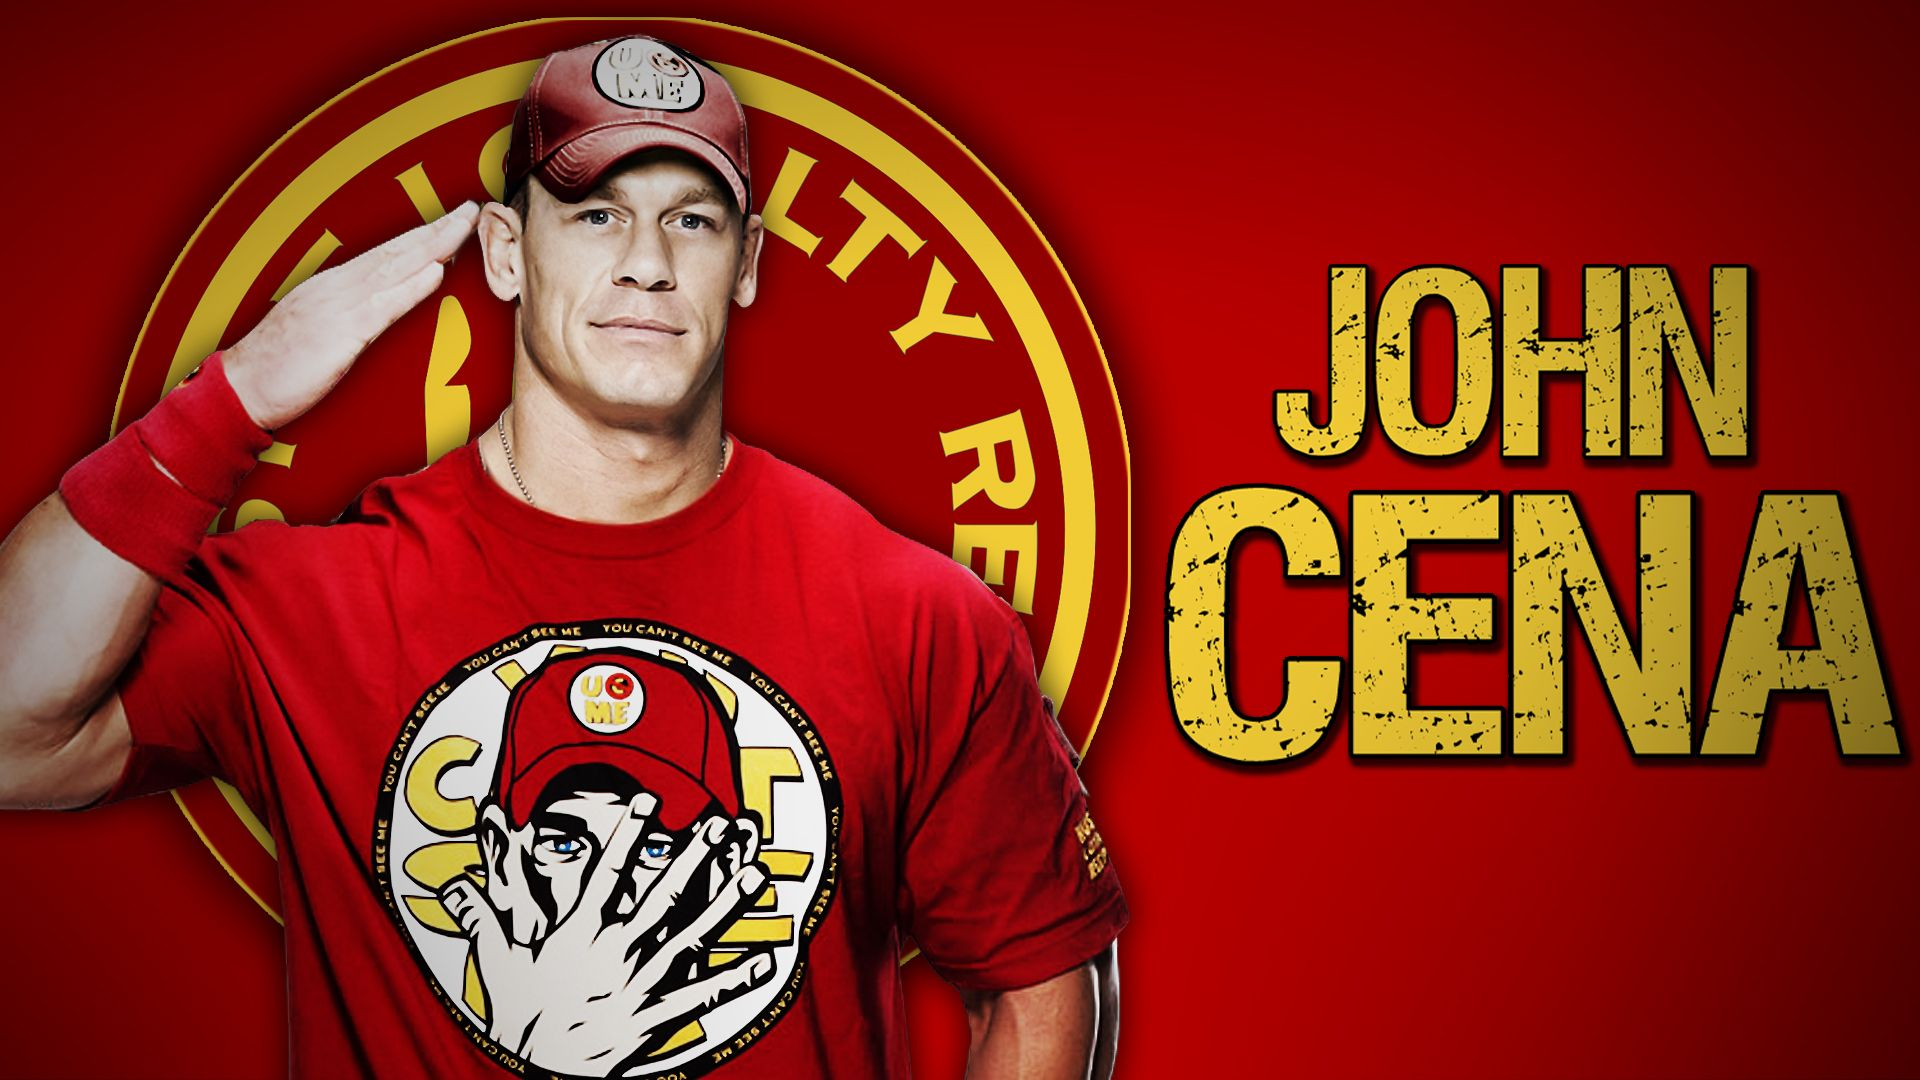 John Cena HD Wallpaper And Images 2015 Free Download